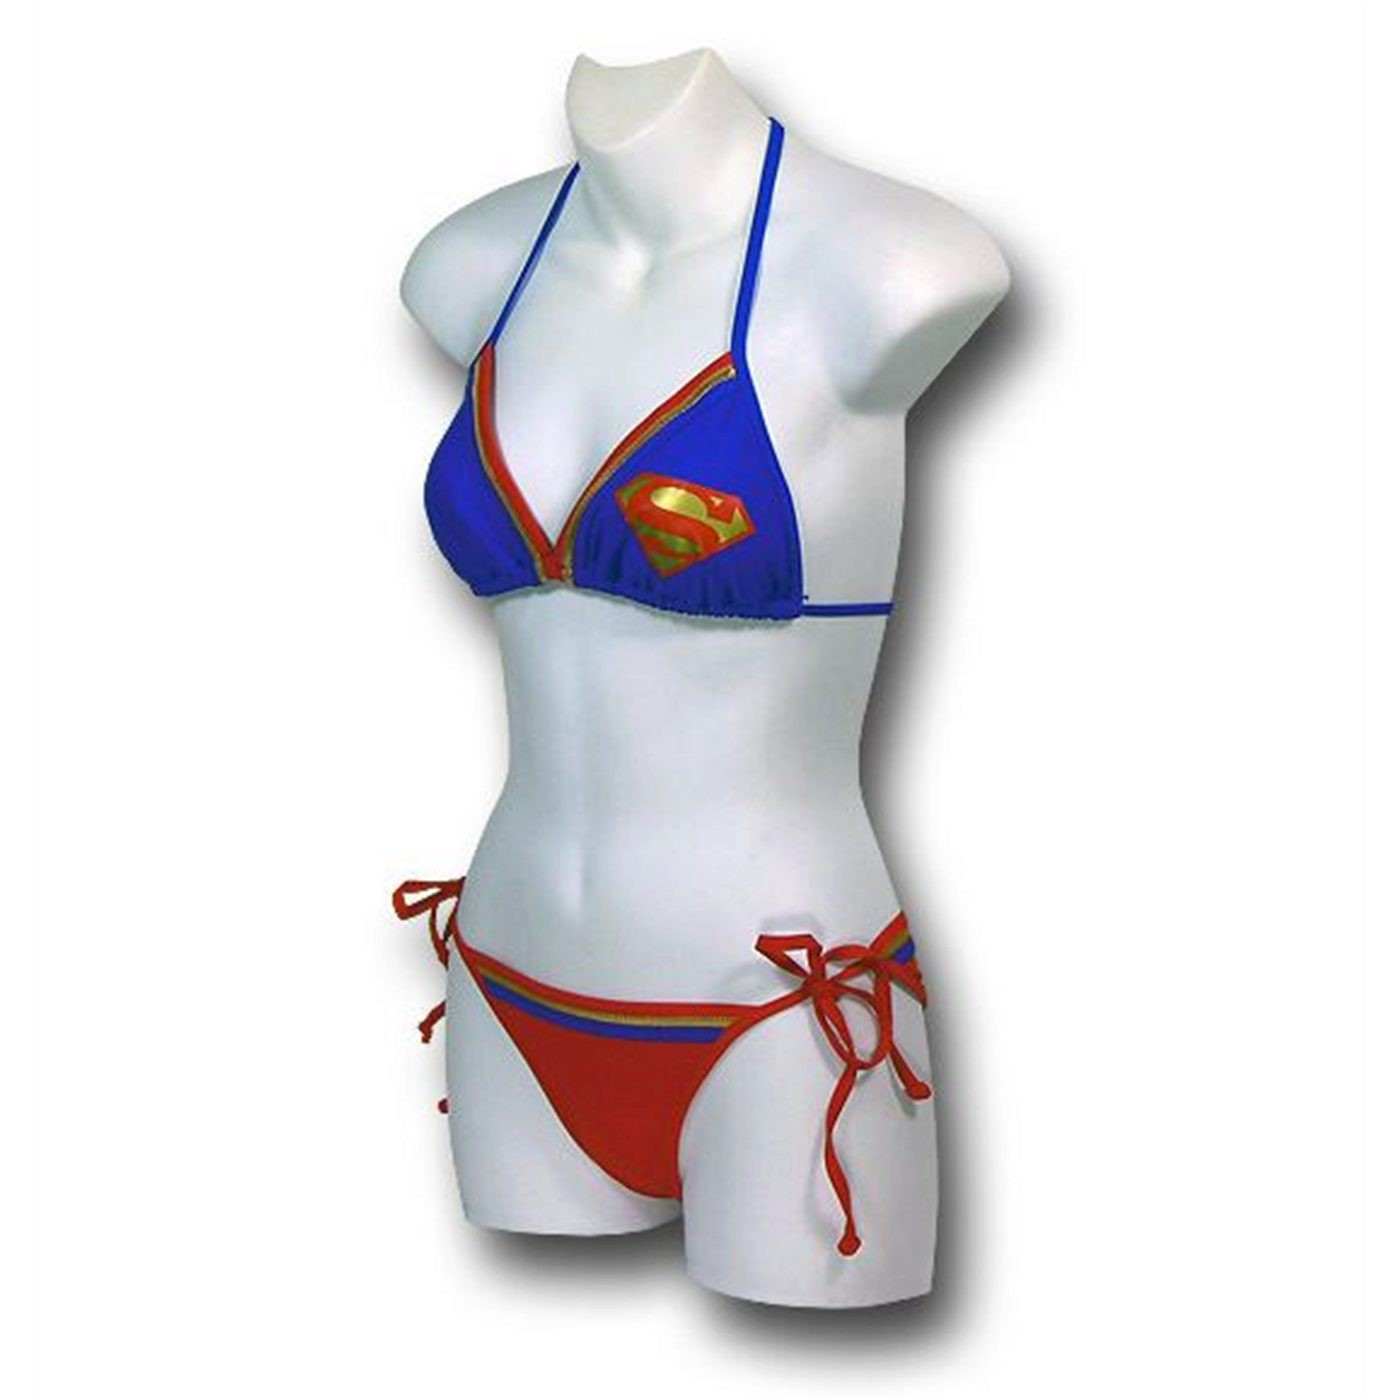 Supergirl Bandeau Triangle Bikini Women's Swimsuit